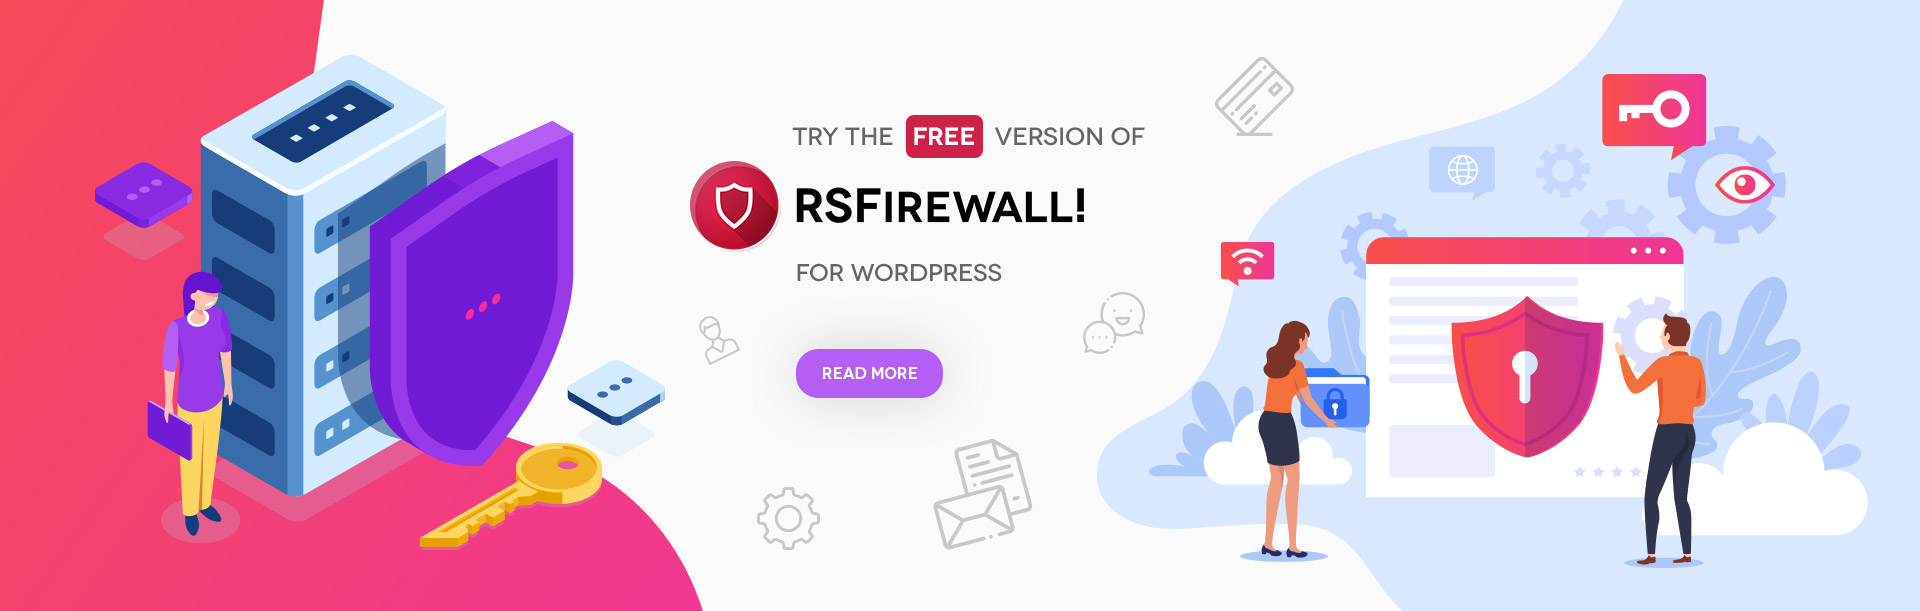 RSFirewall! WordPress Free